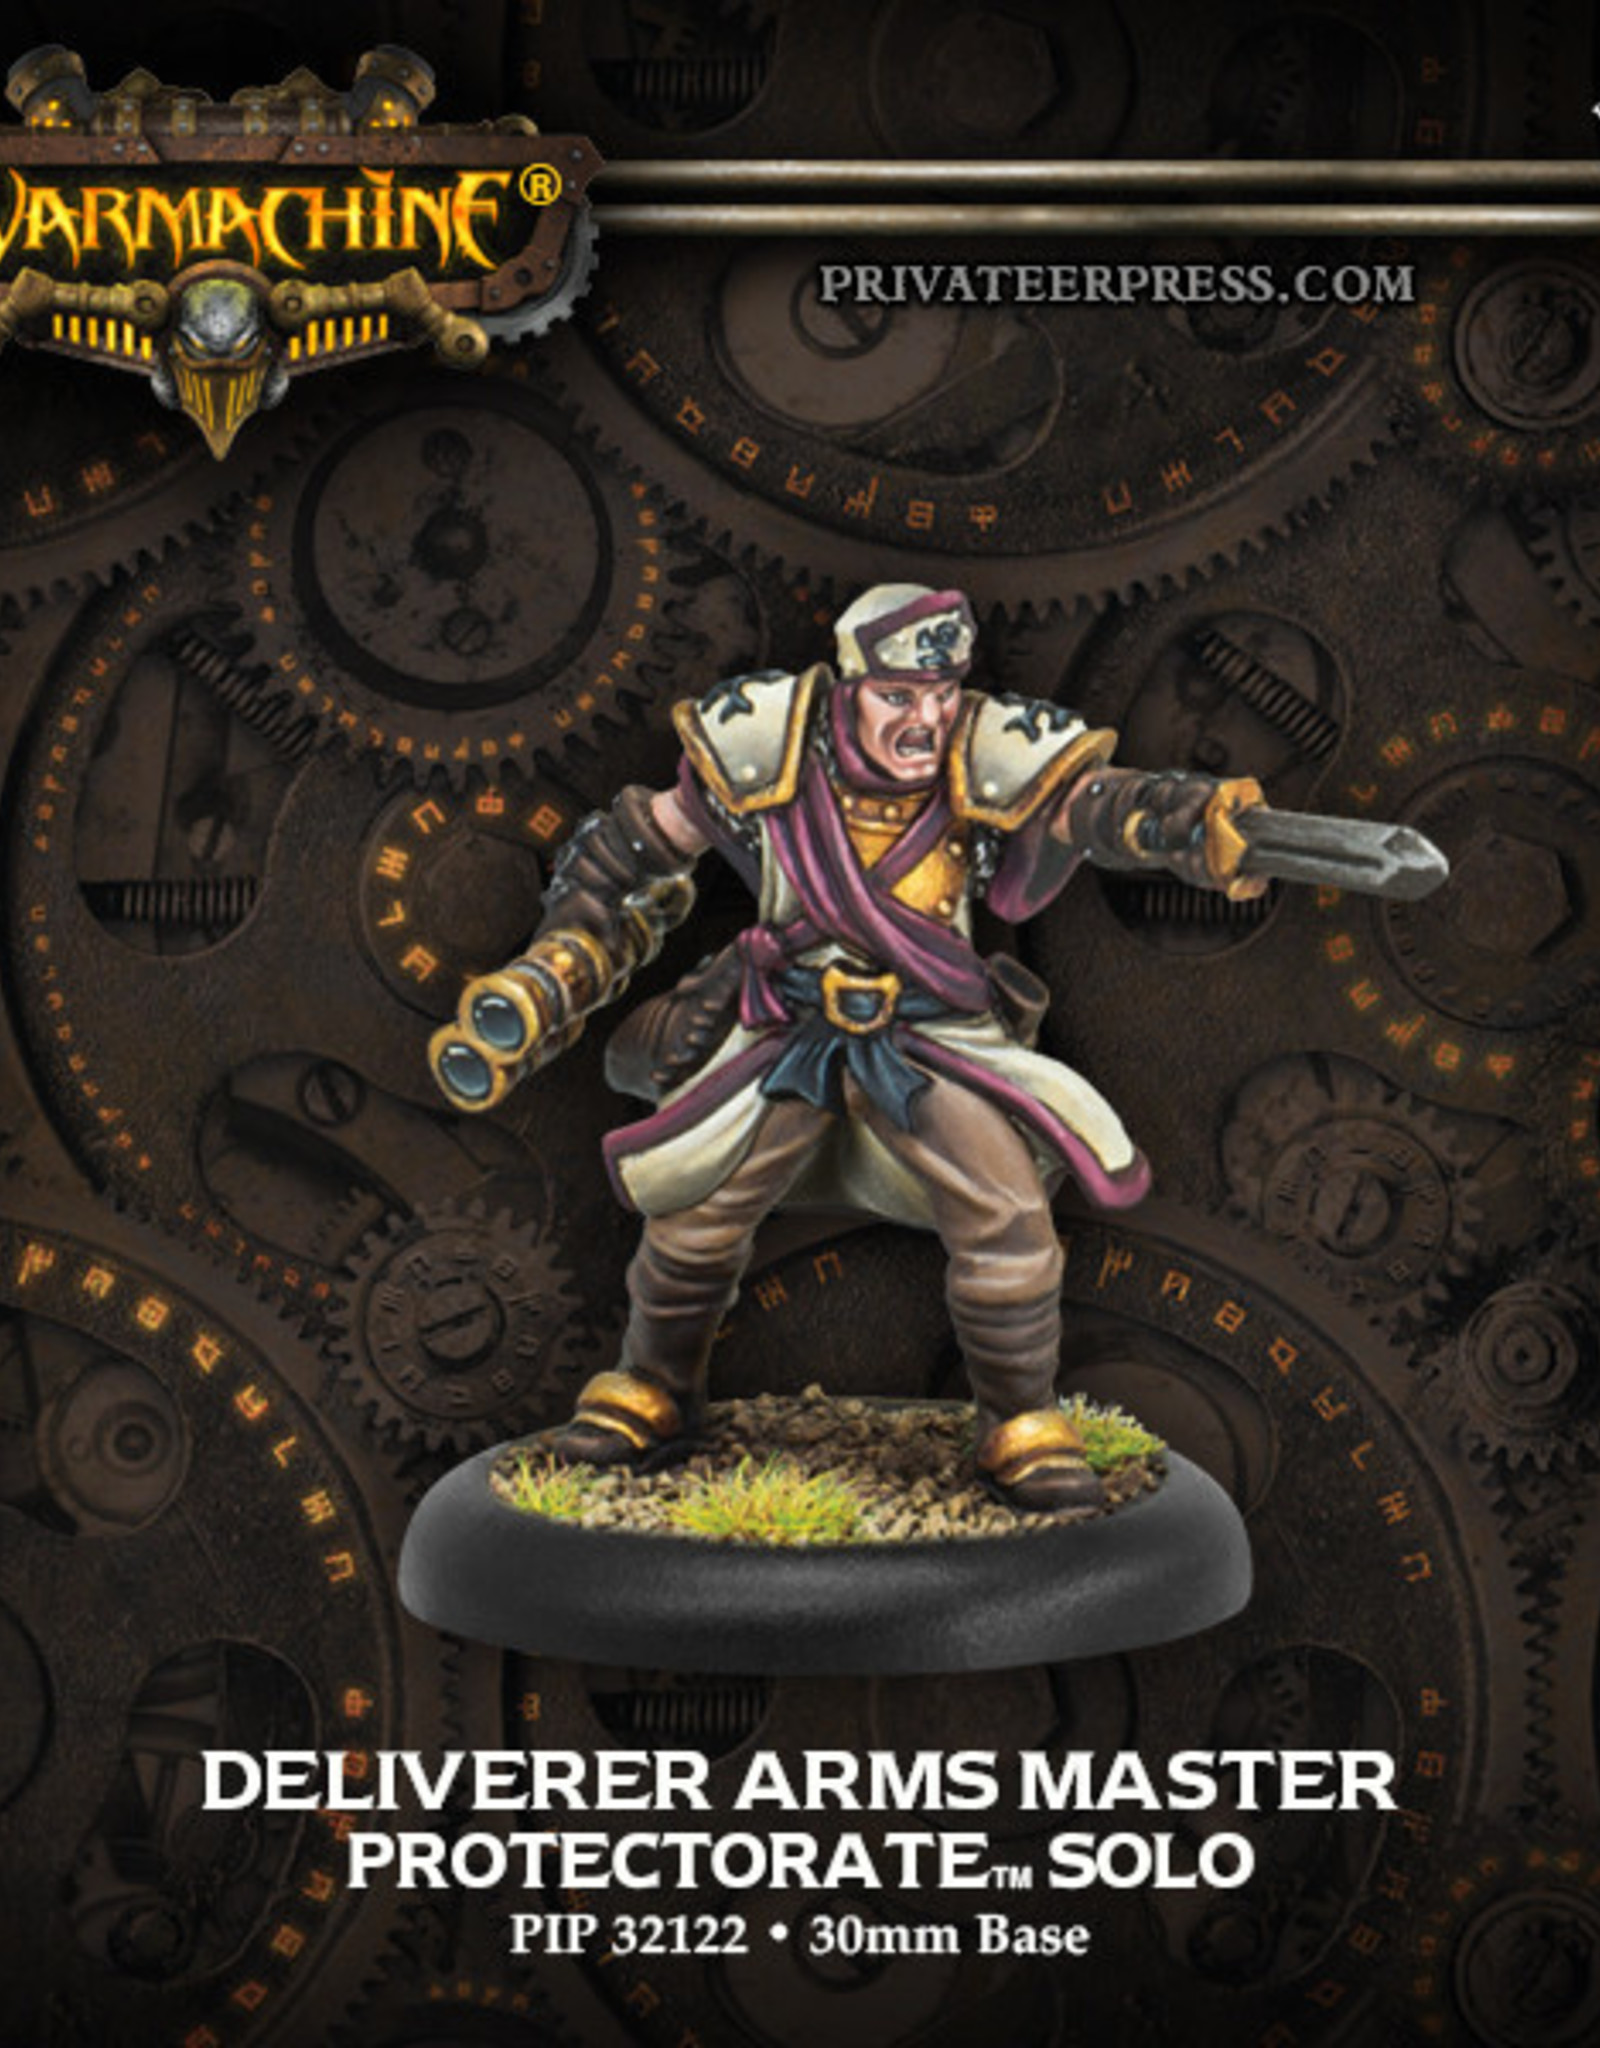 Warmachine Protectorate - Deliverer Arms Master